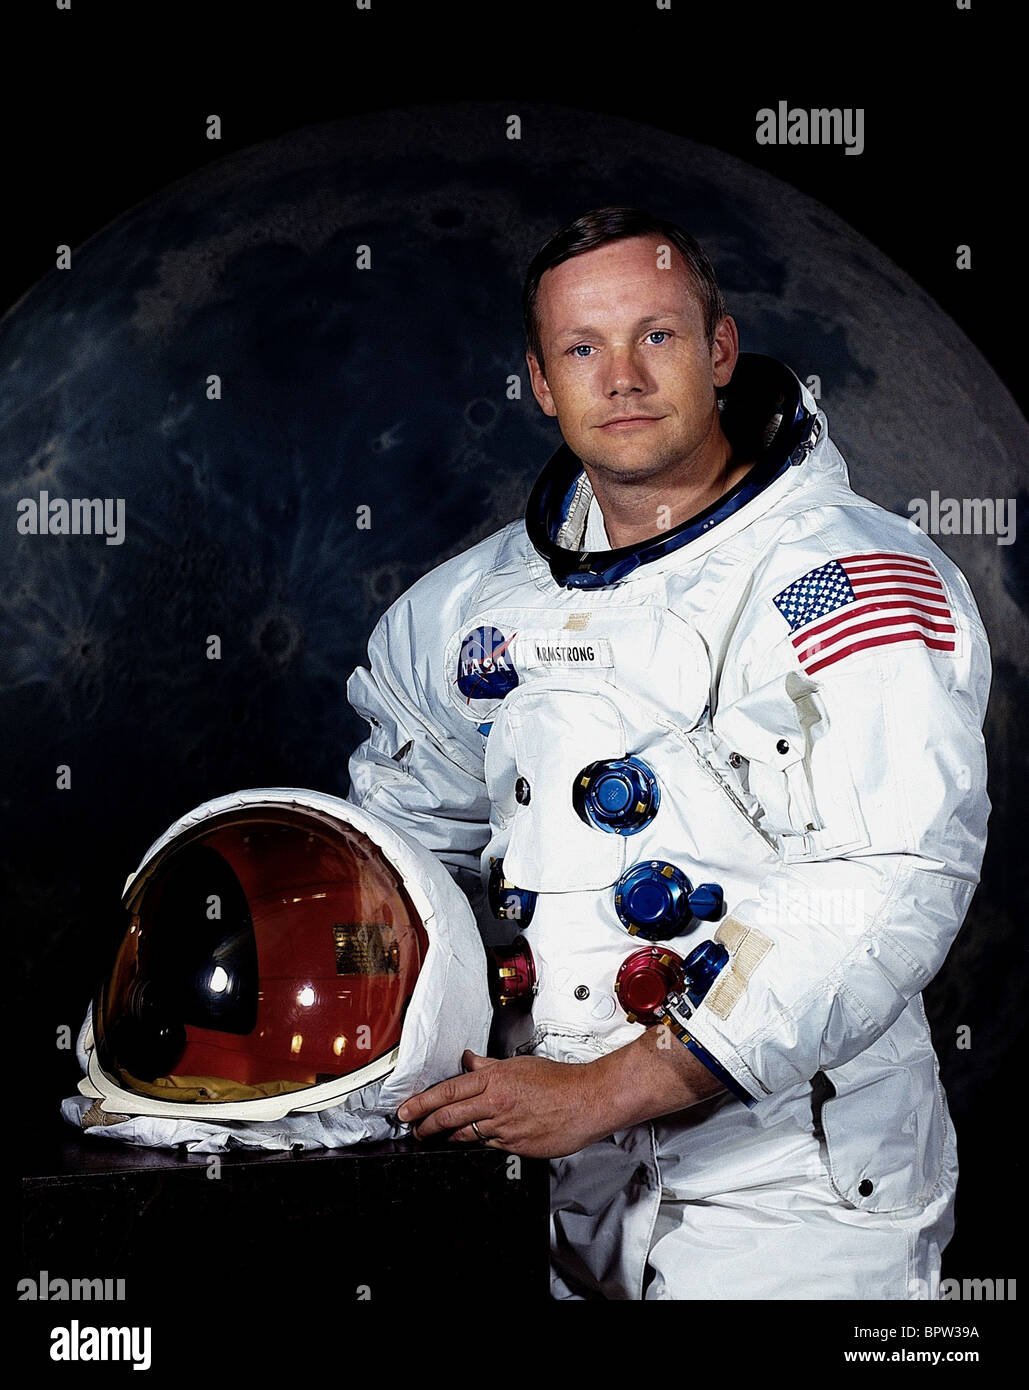 NEIL ARMSTRONG APOLLO 11 ASTRONAUT 16 July 1969 Stock Photo